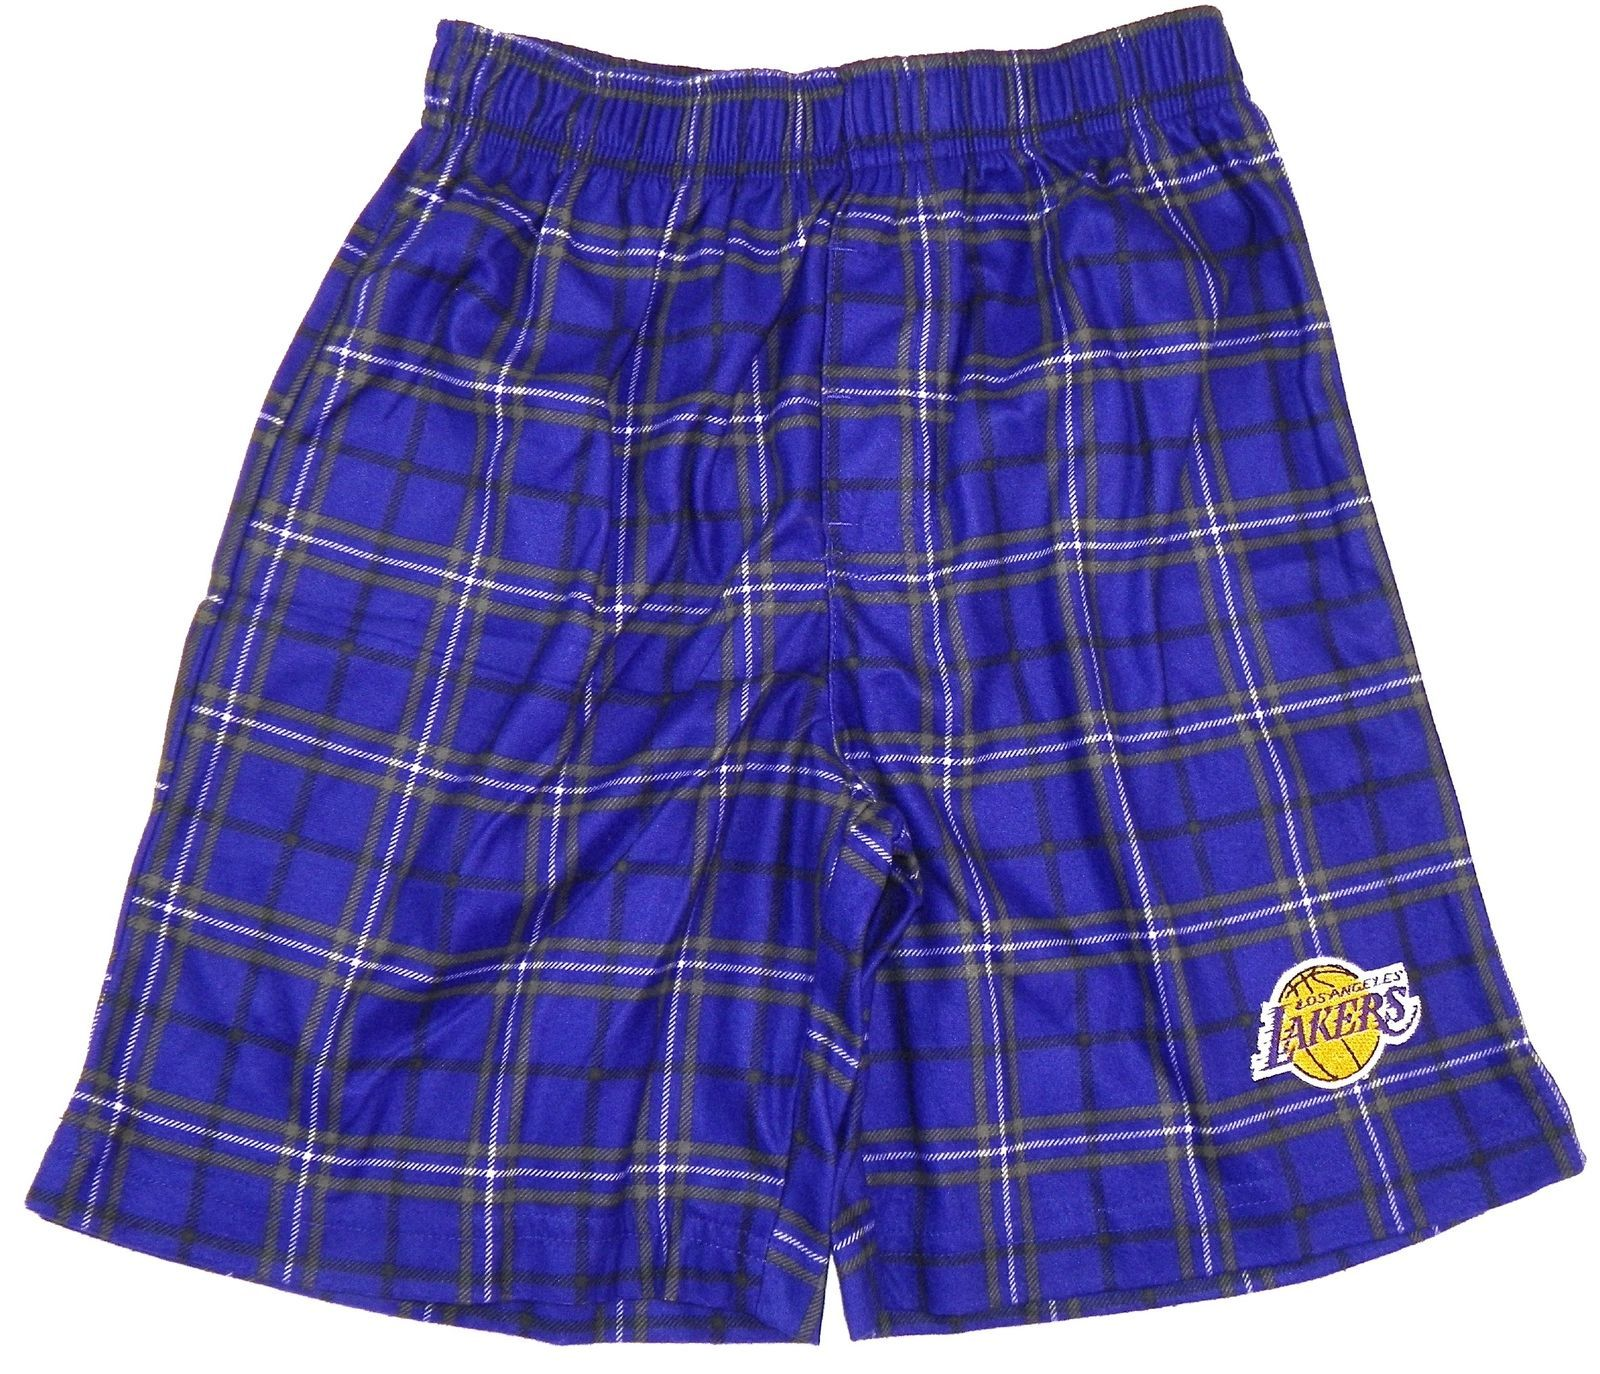 Boy's 4-7 Los Angeles Lakers Pajama Shorts Sleep Lounge NBA Basketball